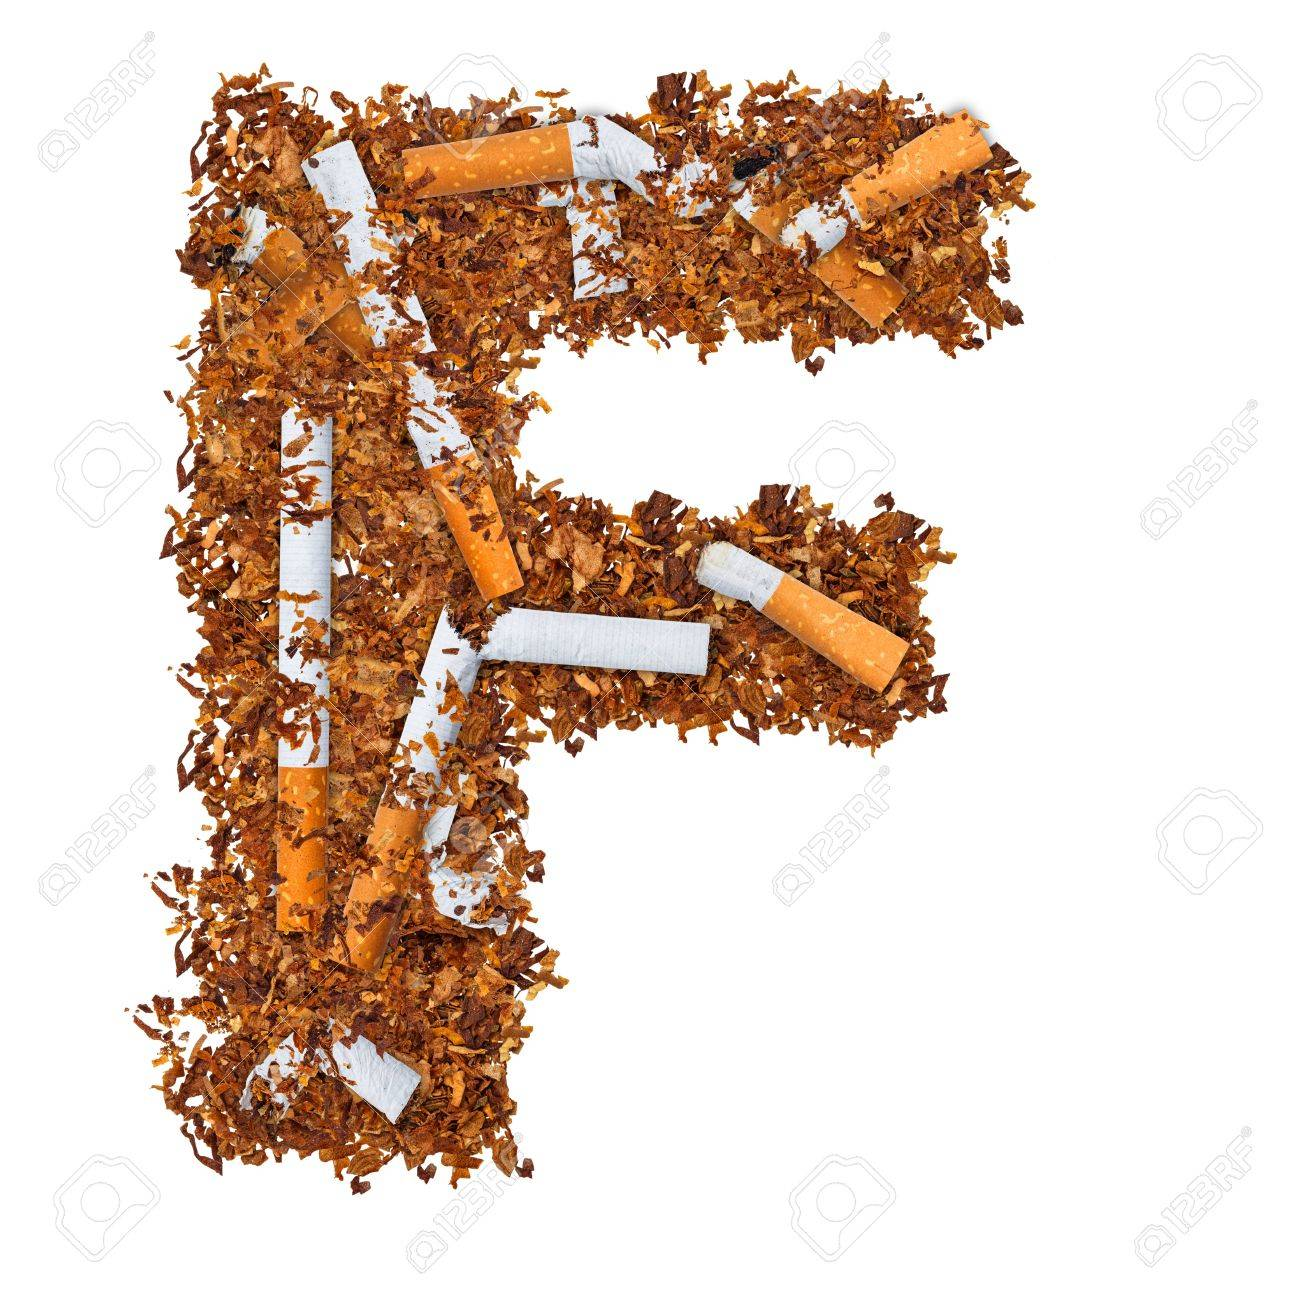 What are cigarettes made of? 57